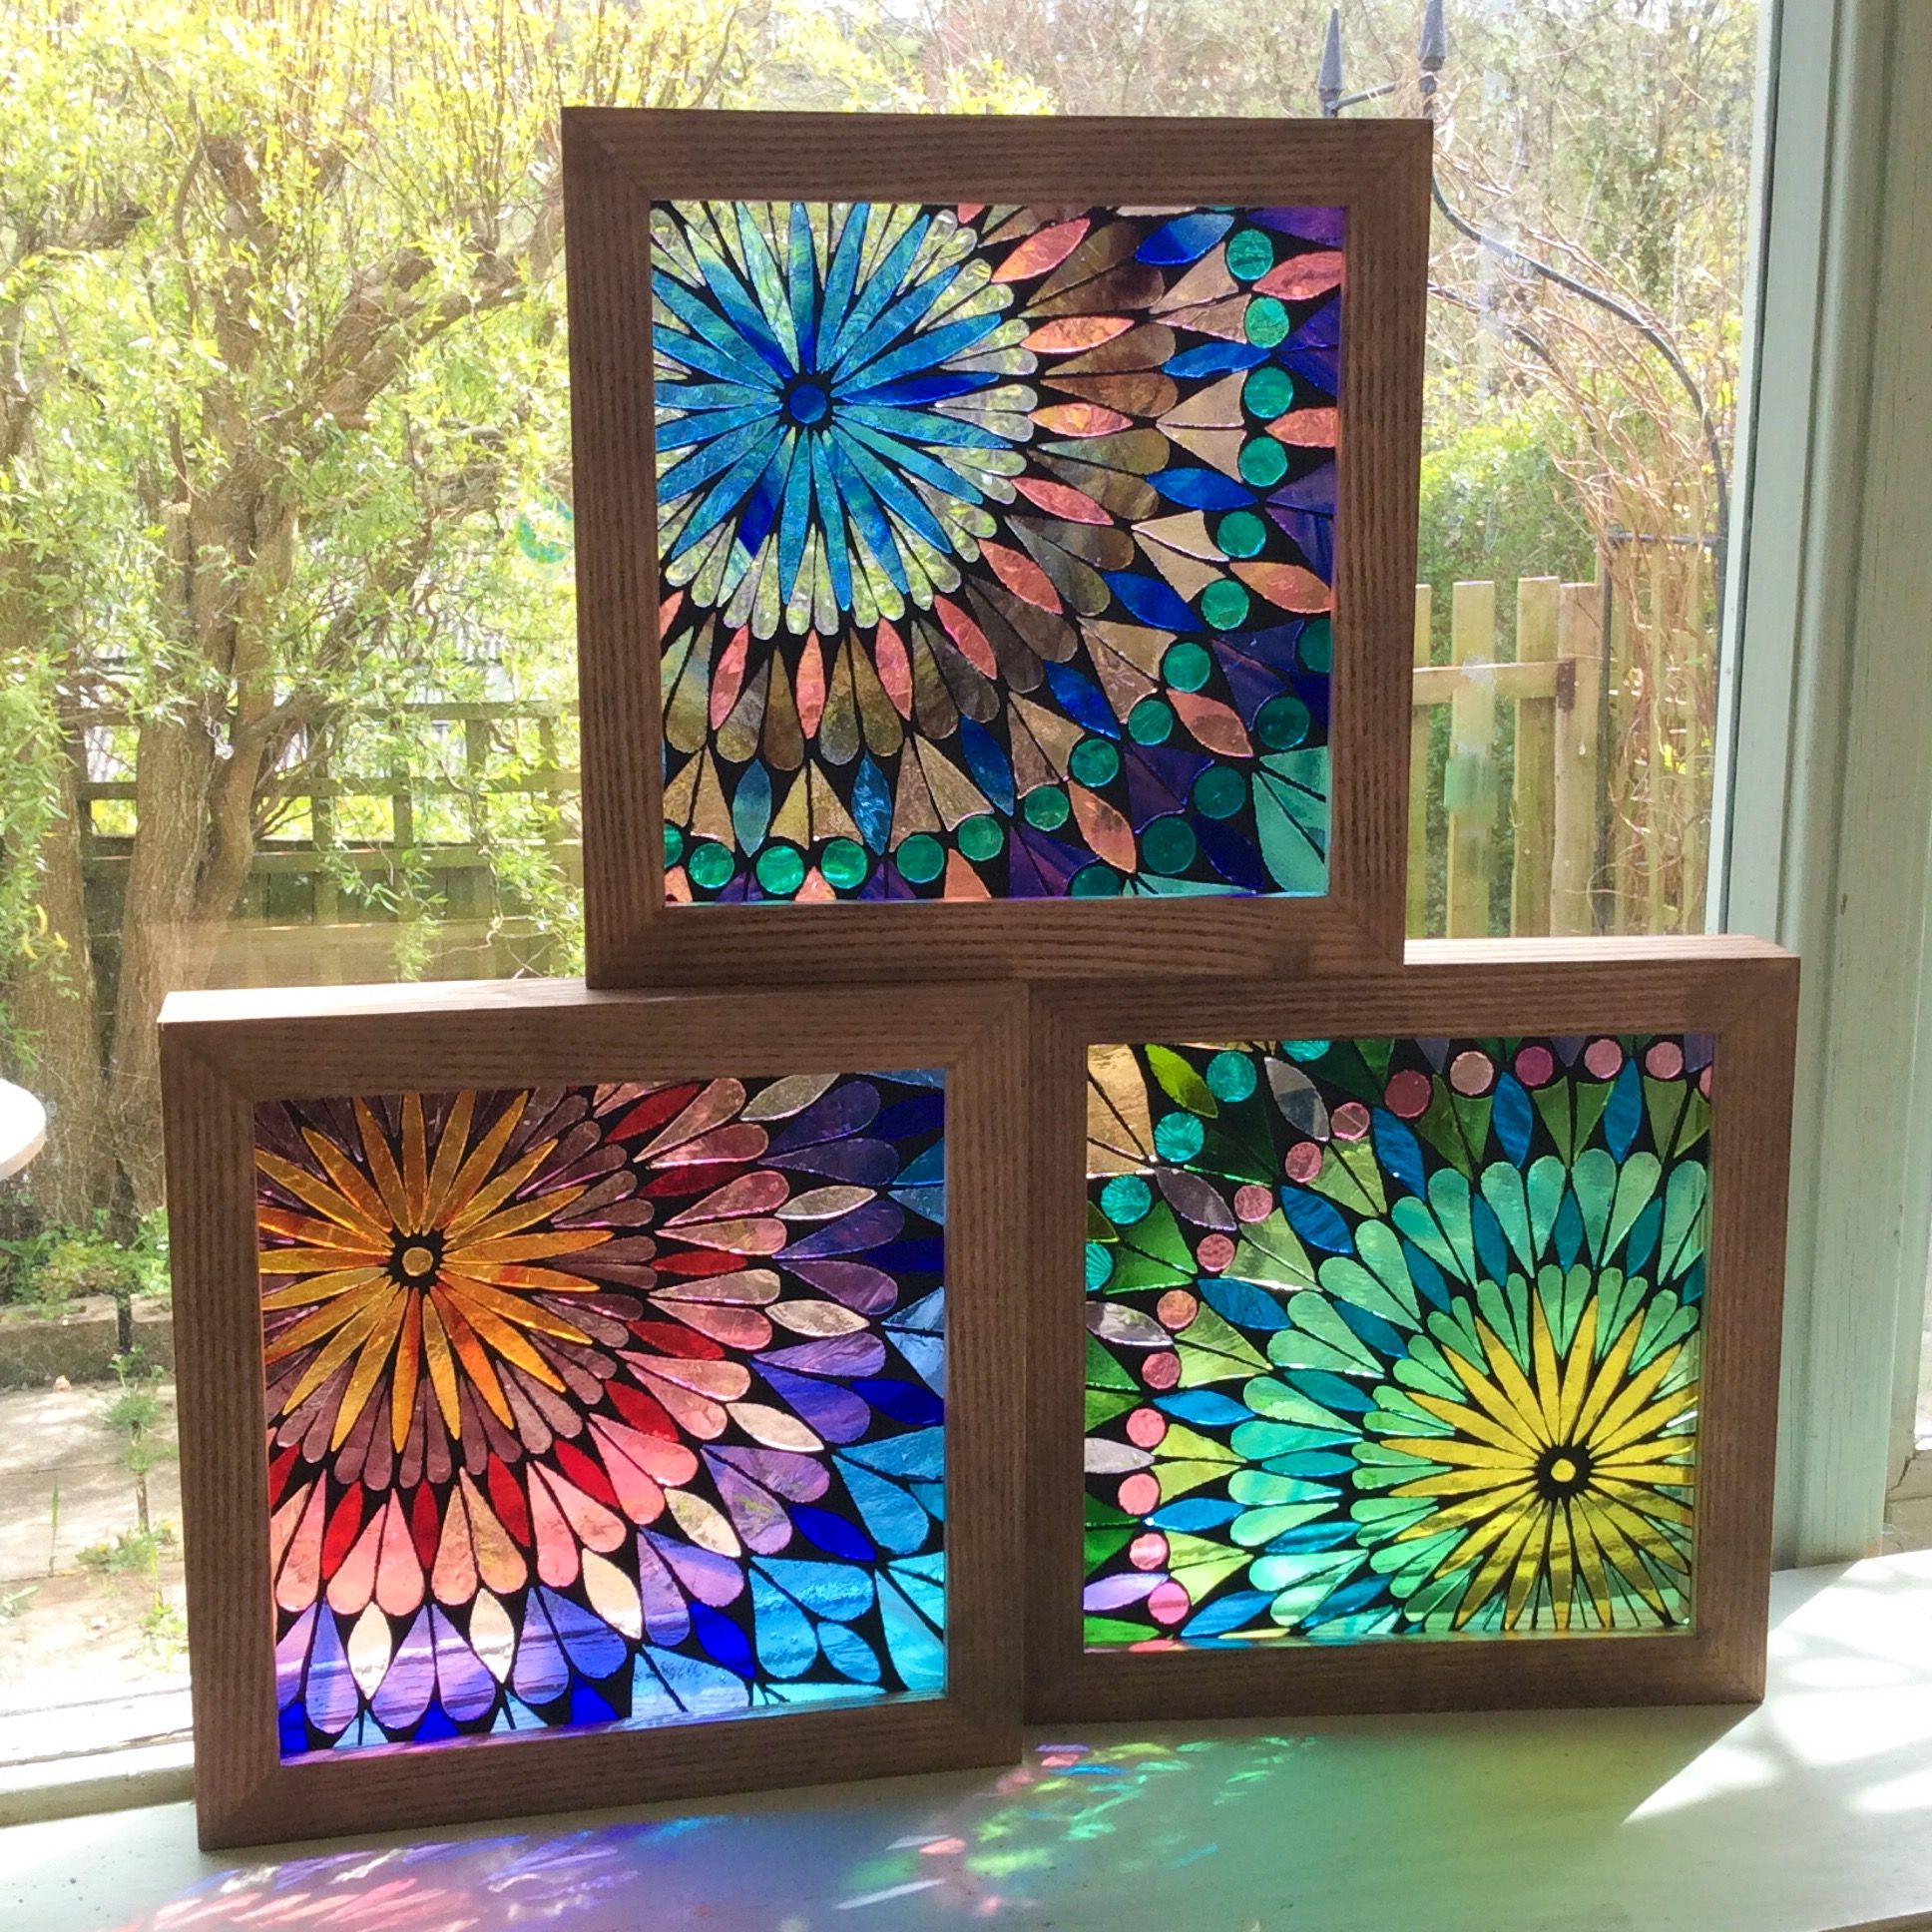 Stained Glass And Mosaics By Siobhan Allen Welcome Siobhan Allen Stained Glass And Mosaics Stained Glass Diy Stained Glass Crafts Glass Painting Designs